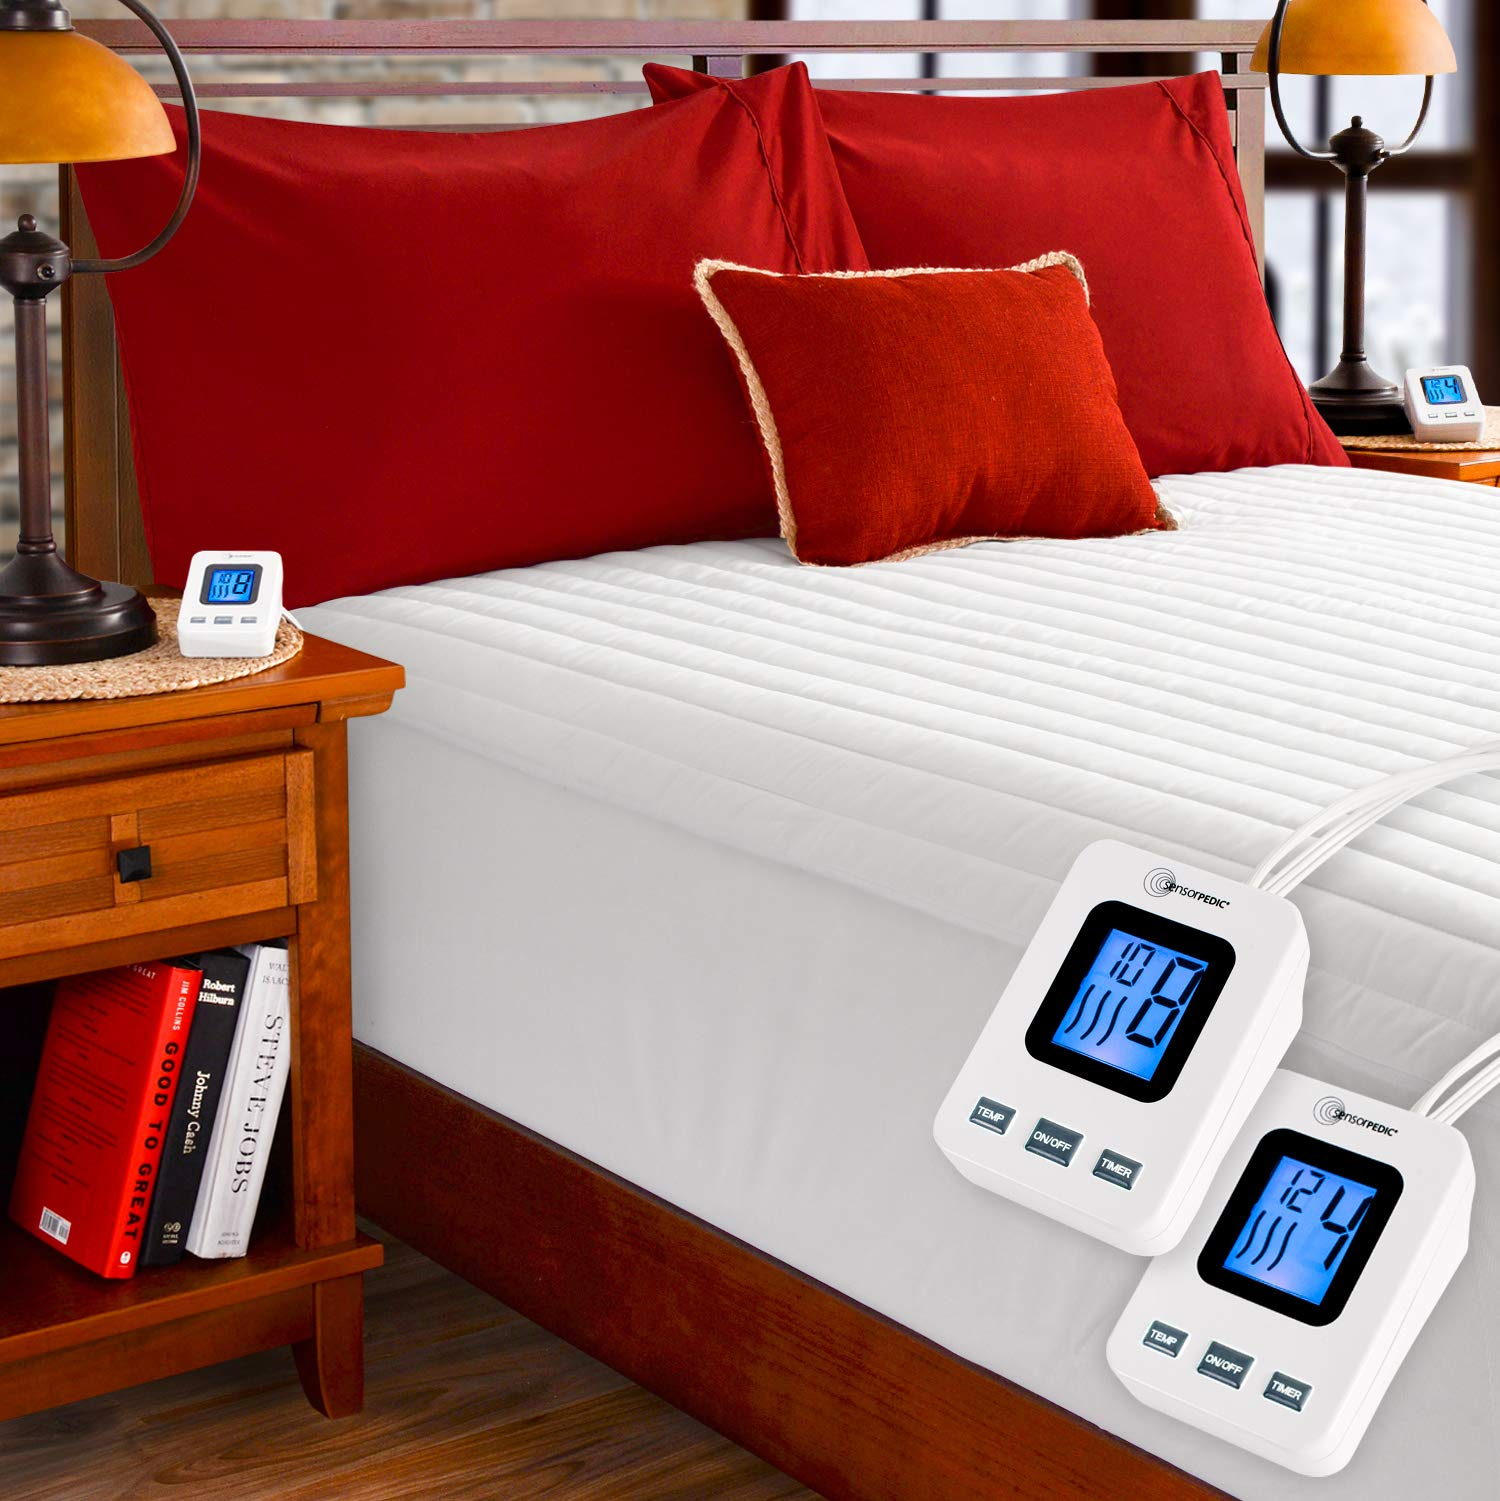 SimplyWarm Electric Heated Channel Quilted Mattress Pad with Sensor-Safe Overheat Technology - New for 2018 HIGH TEC Digital Controller (Queen w/Dual Controllers)